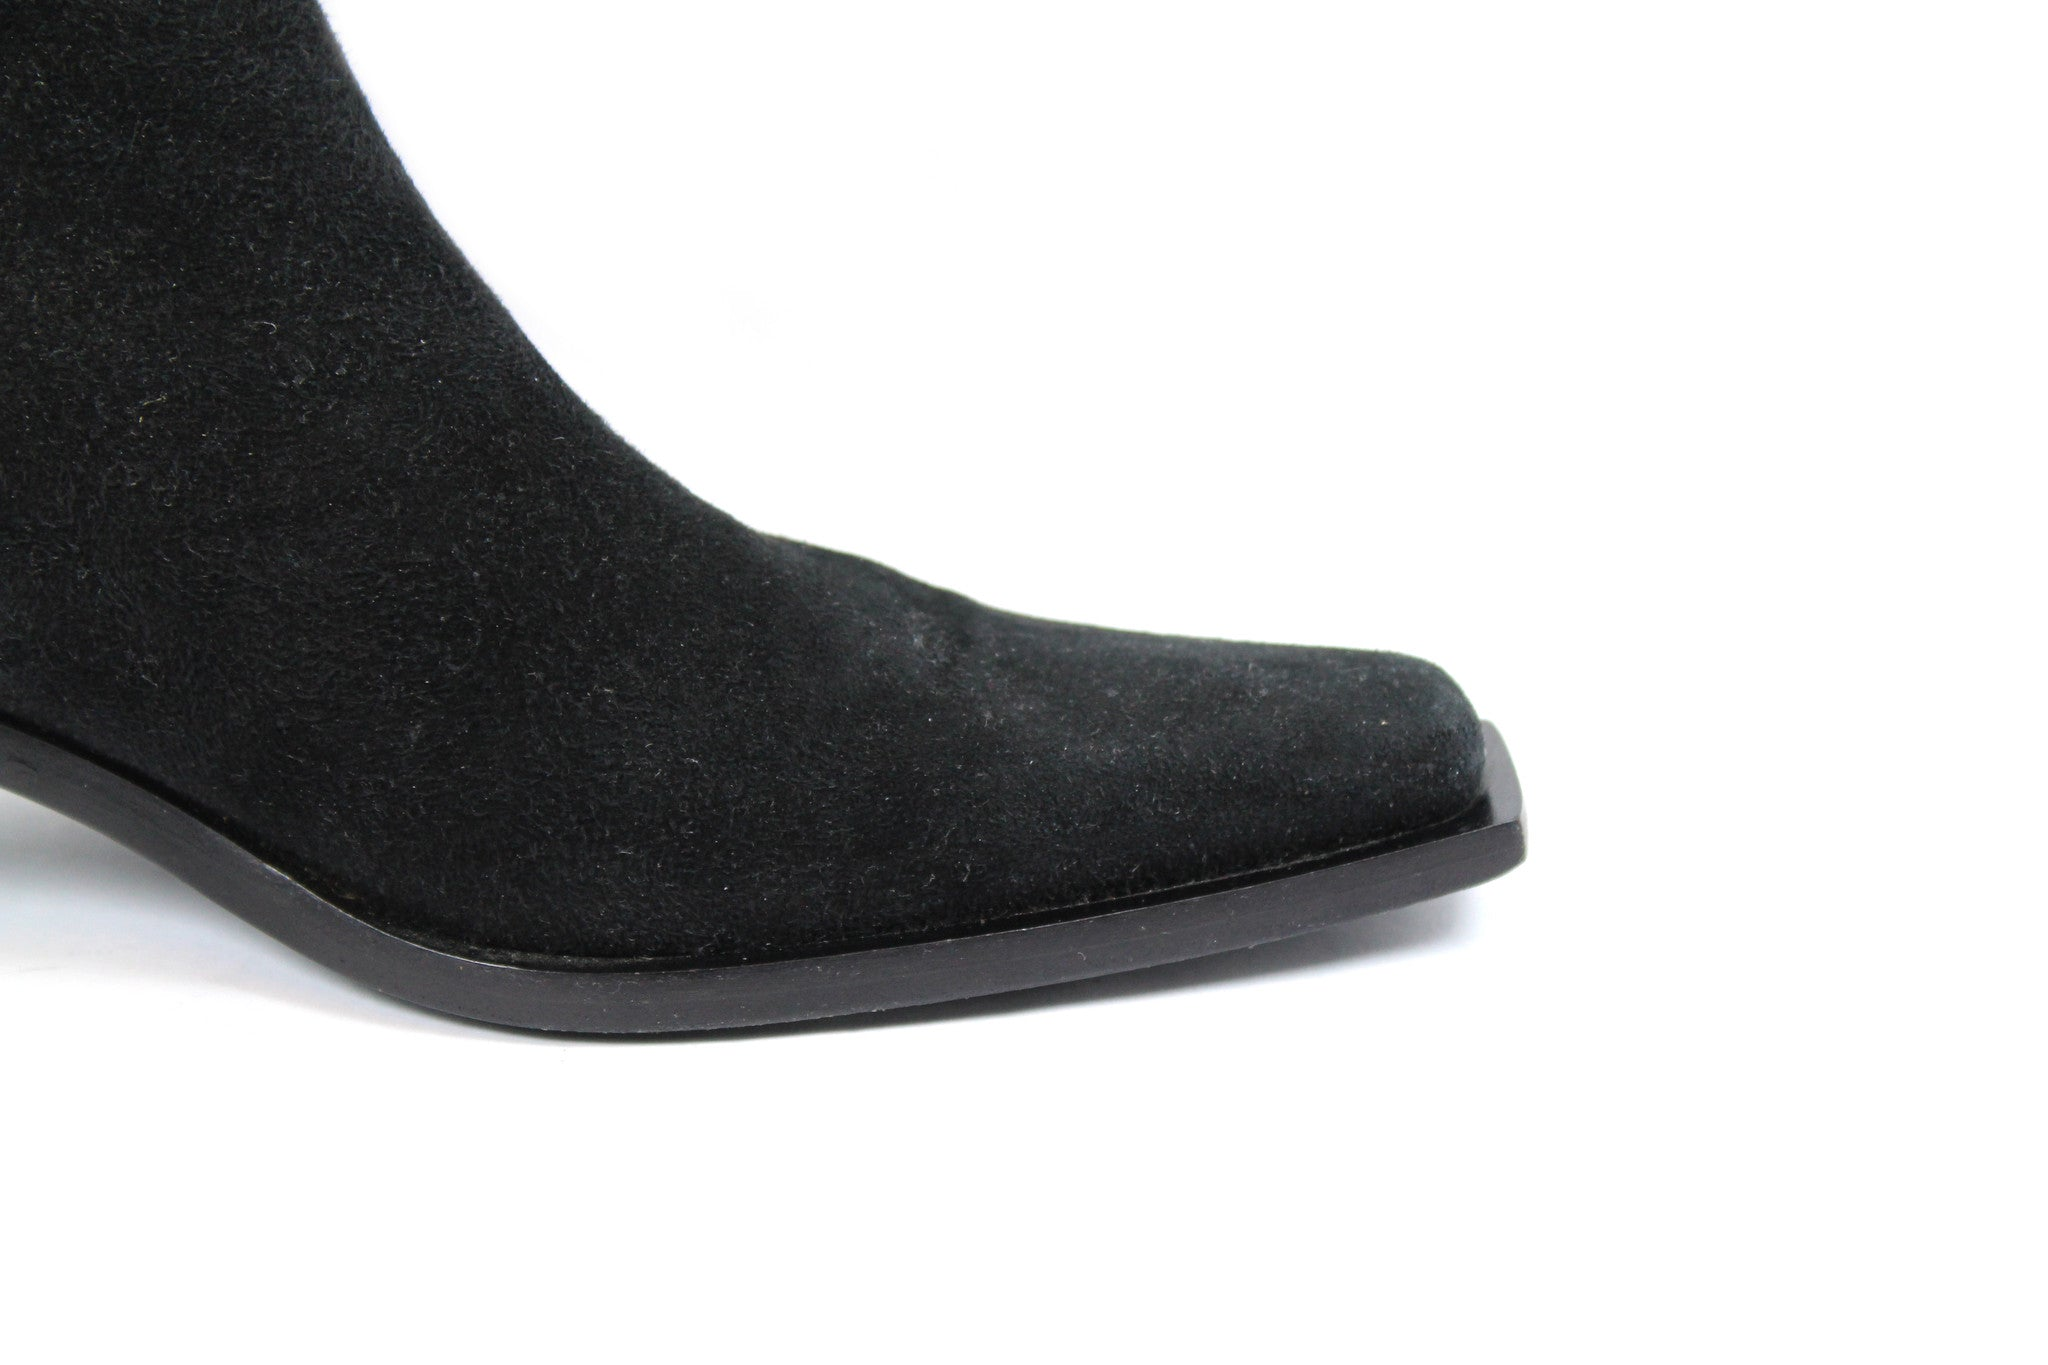 'SOLD' Ann Demeulemeester Suede Ankle Boots w Slanted Heel (Size 37) - Encore Consignment - 7